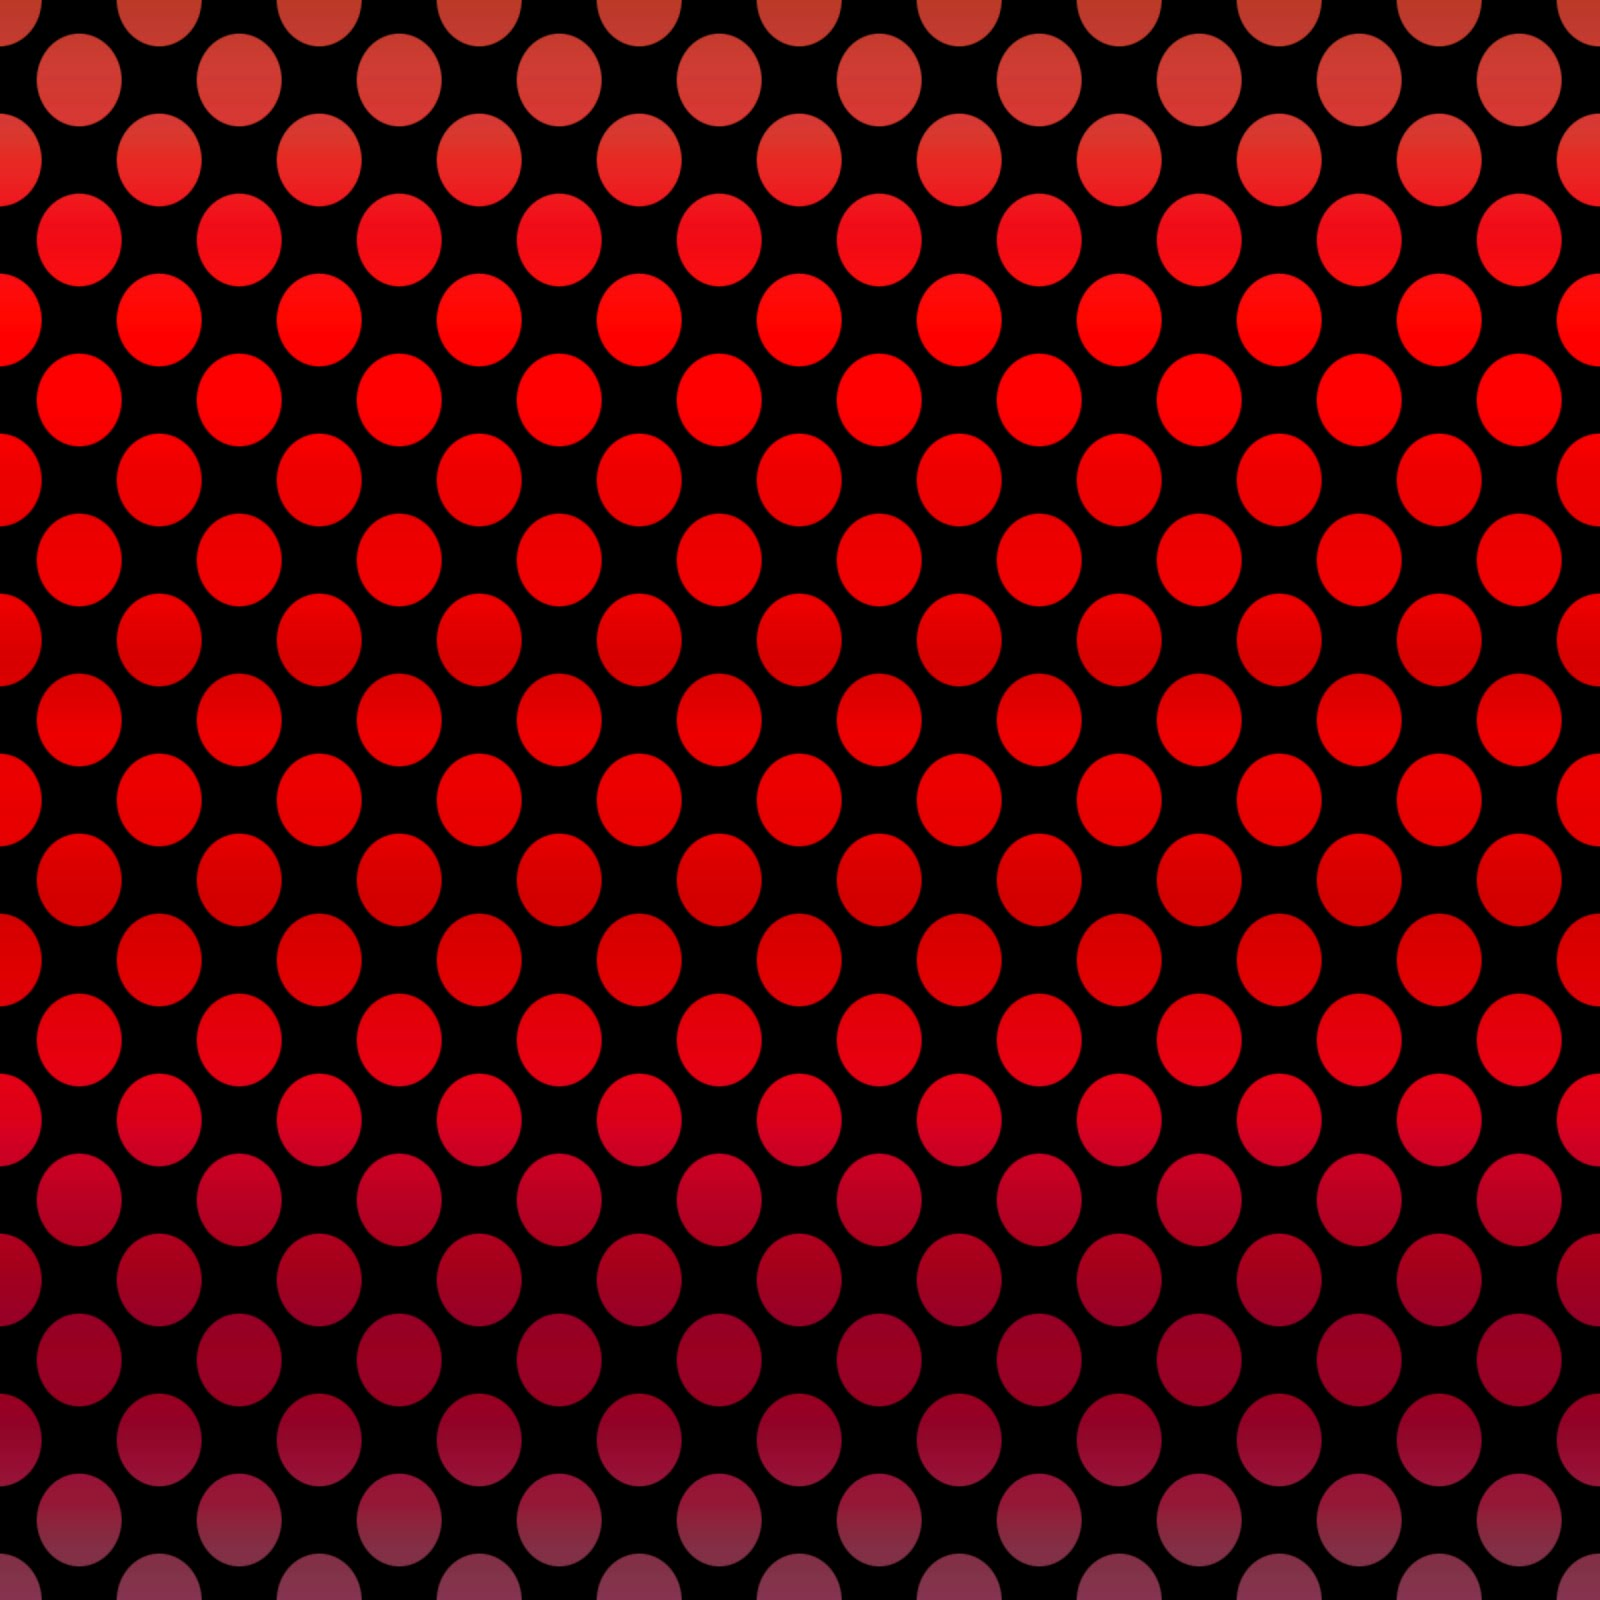 ... Amour: Free Digital Scrapbook Papers - Red and Black Polka Dots